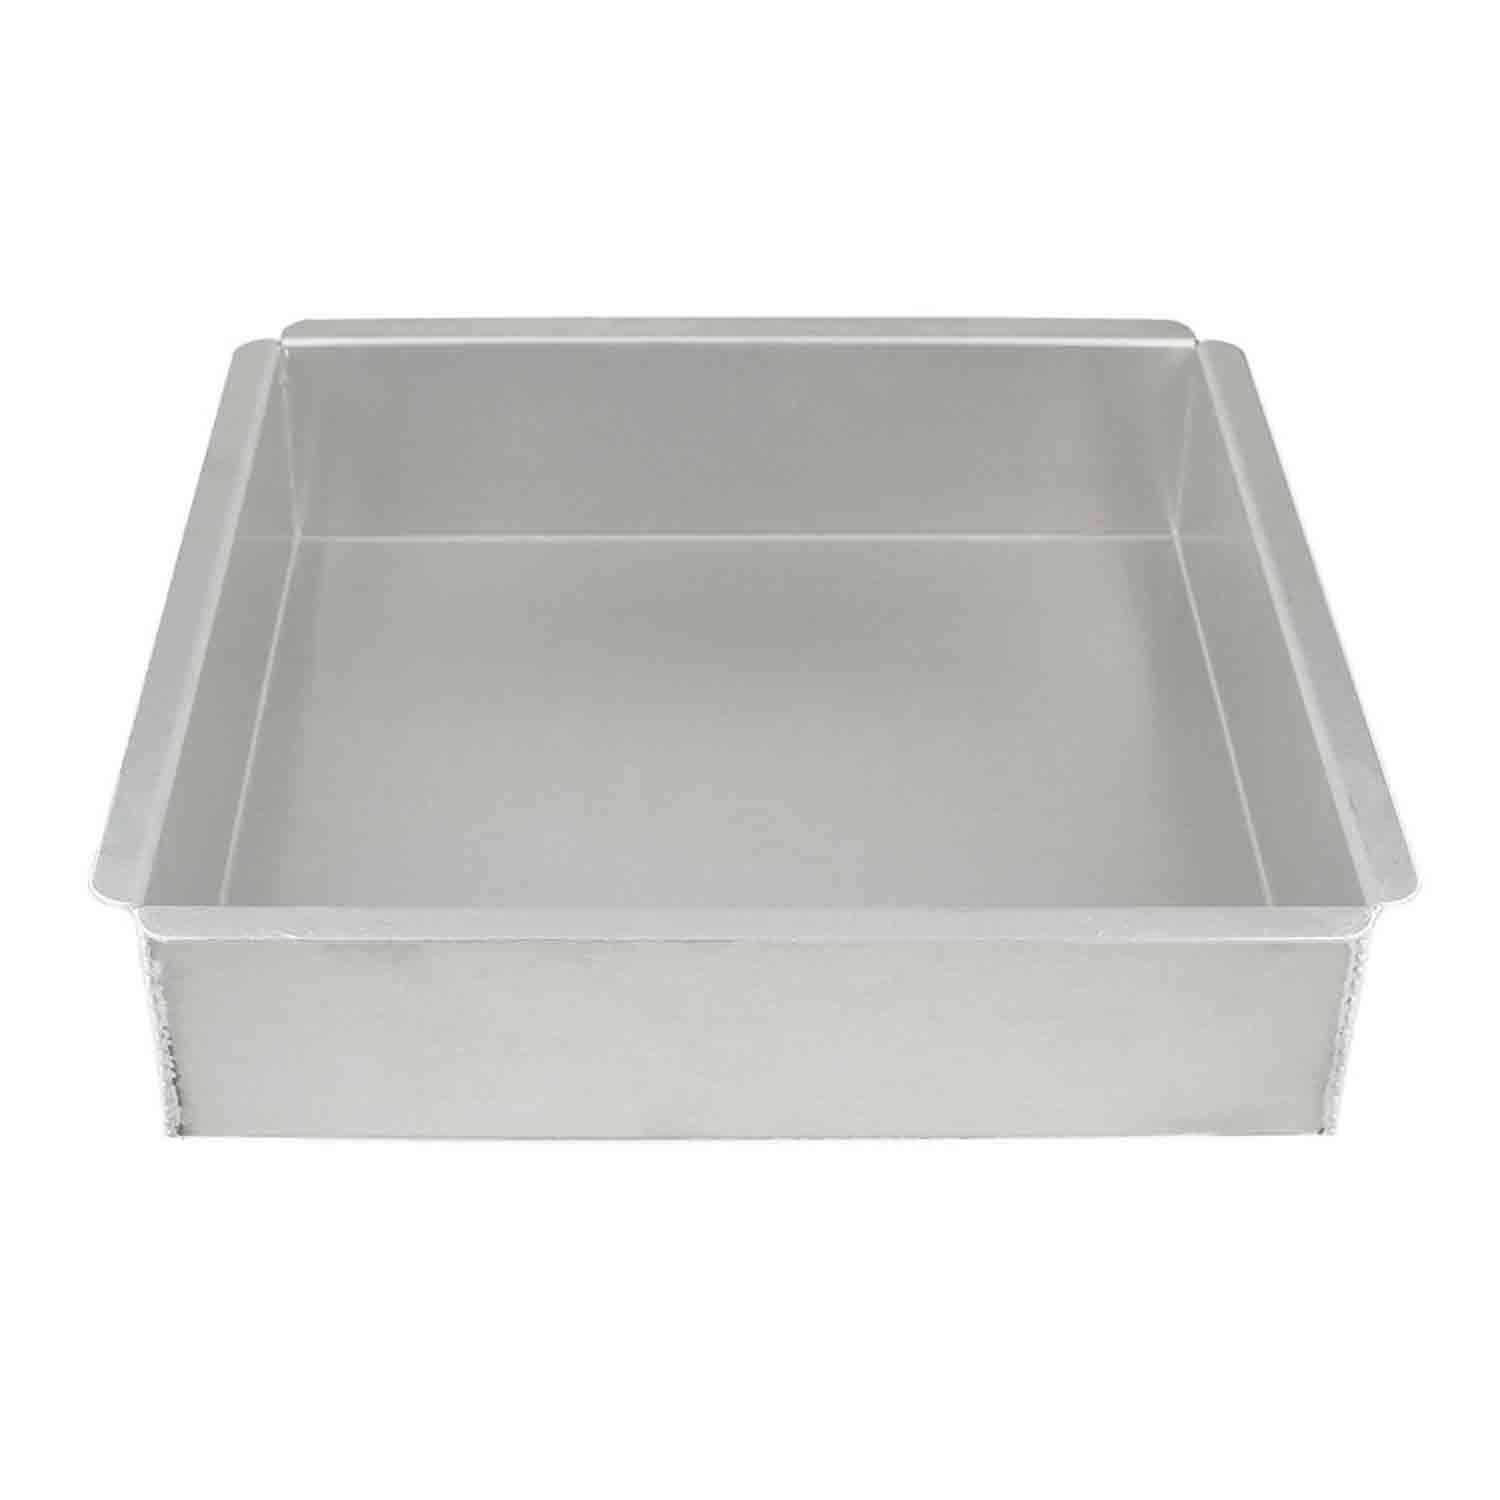 "12 x 3"" Magic Line Square Cake Pan"